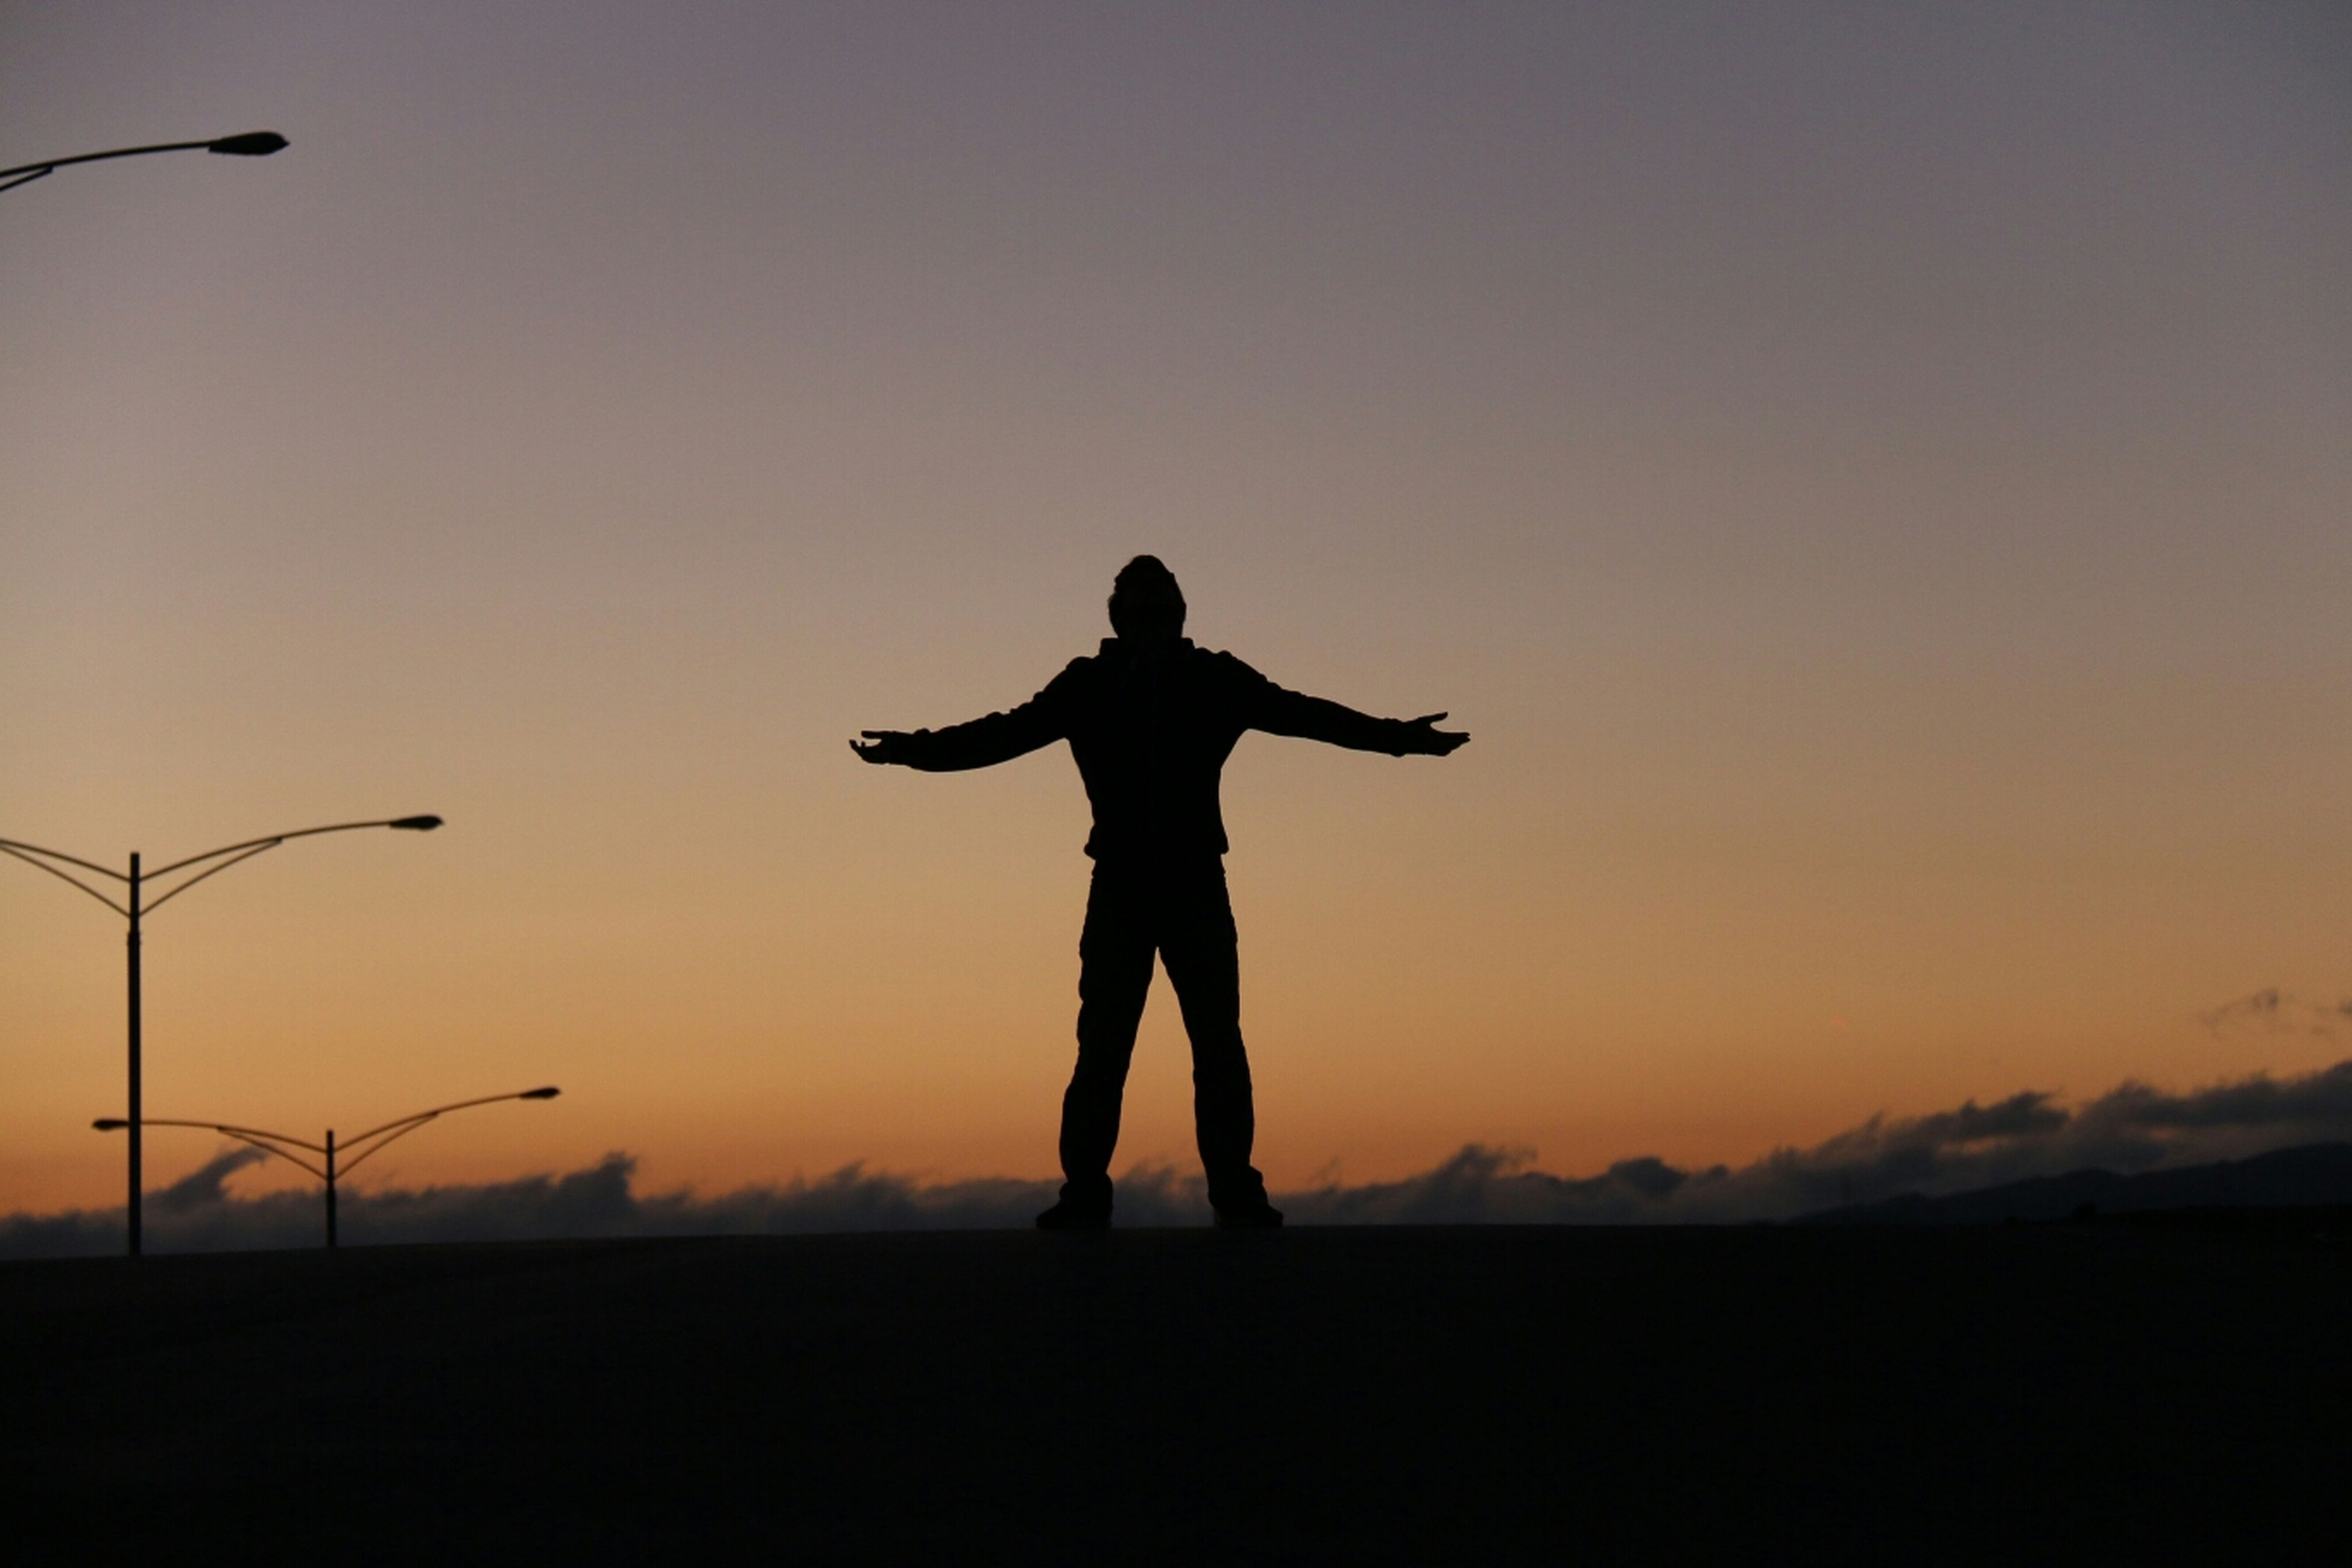 silhouette, full length, sunset, standing, lifestyles, leisure activity, copy space, clear sky, men, arms outstretched, sky, landscape, dusk, tranquility, orange color, tranquil scene, arms raised, nature